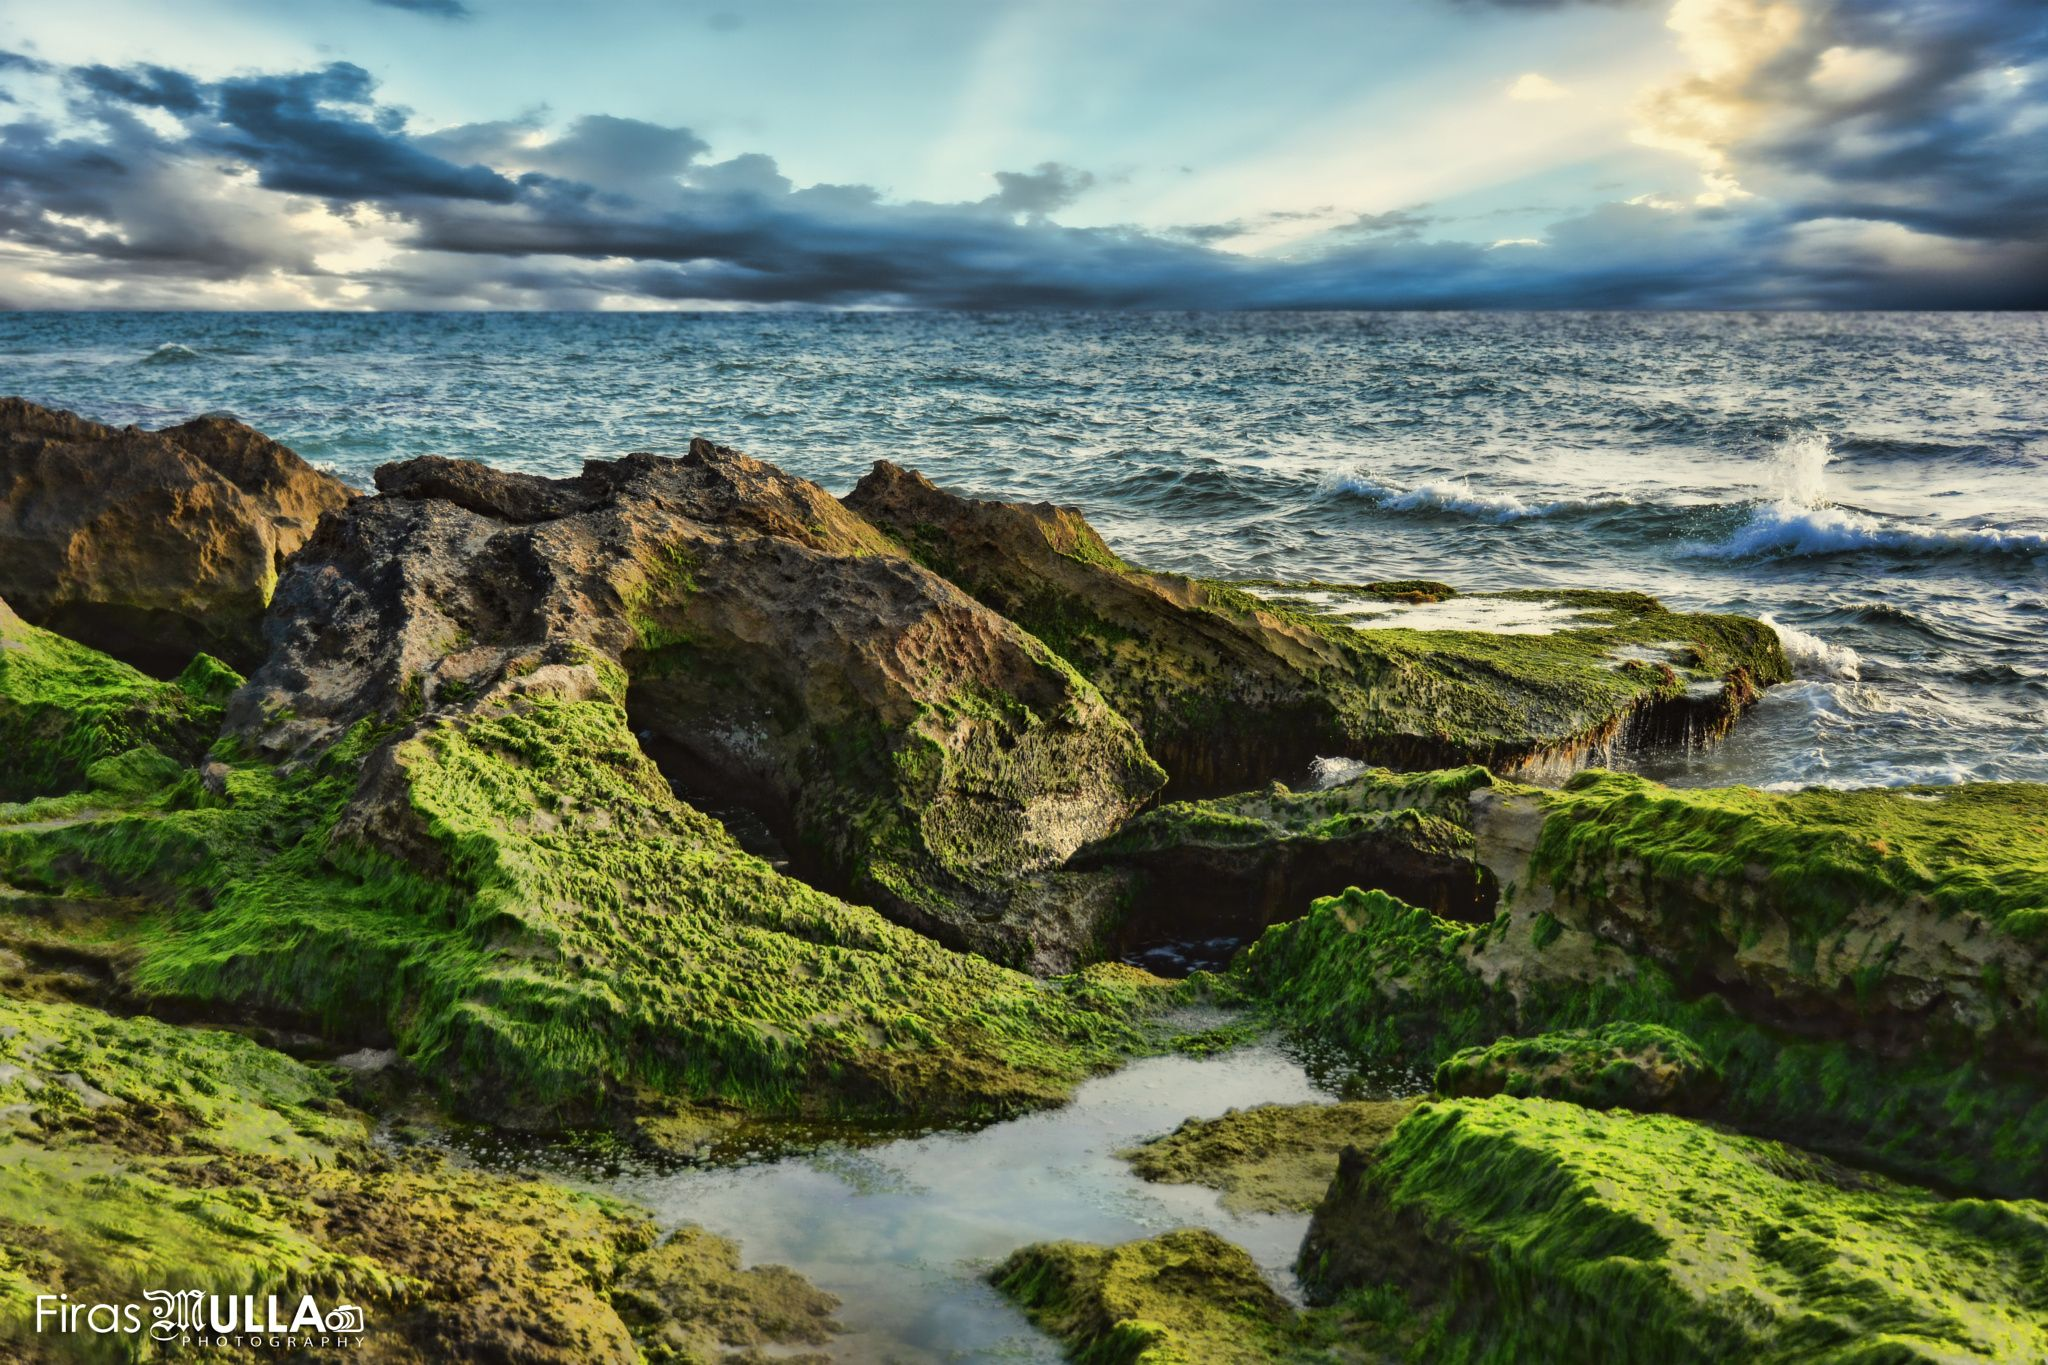 Photograph beach landscape lovely by firas mulla photography on 500px